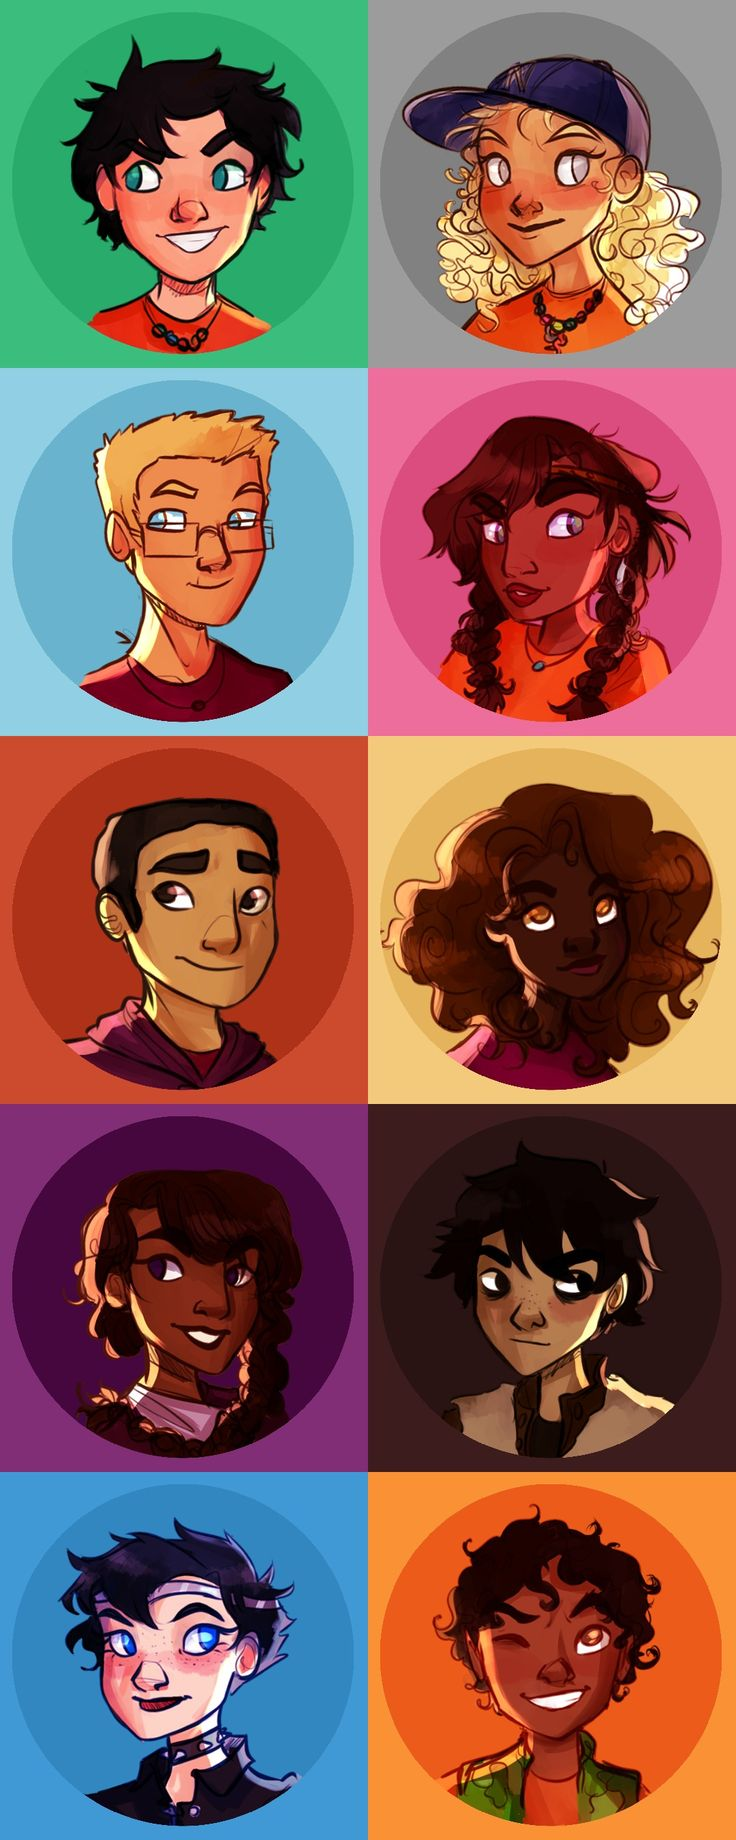 Percy Jackson, Annabeth Chase, Jason Grace, Piper McClean, Frank Zhang, Hazel Levesque, Reyna Ramírez-Arellano, Nico di Angelo, Thalia Grace & Leo Valdez | art by dellbelle39 (Artwork)